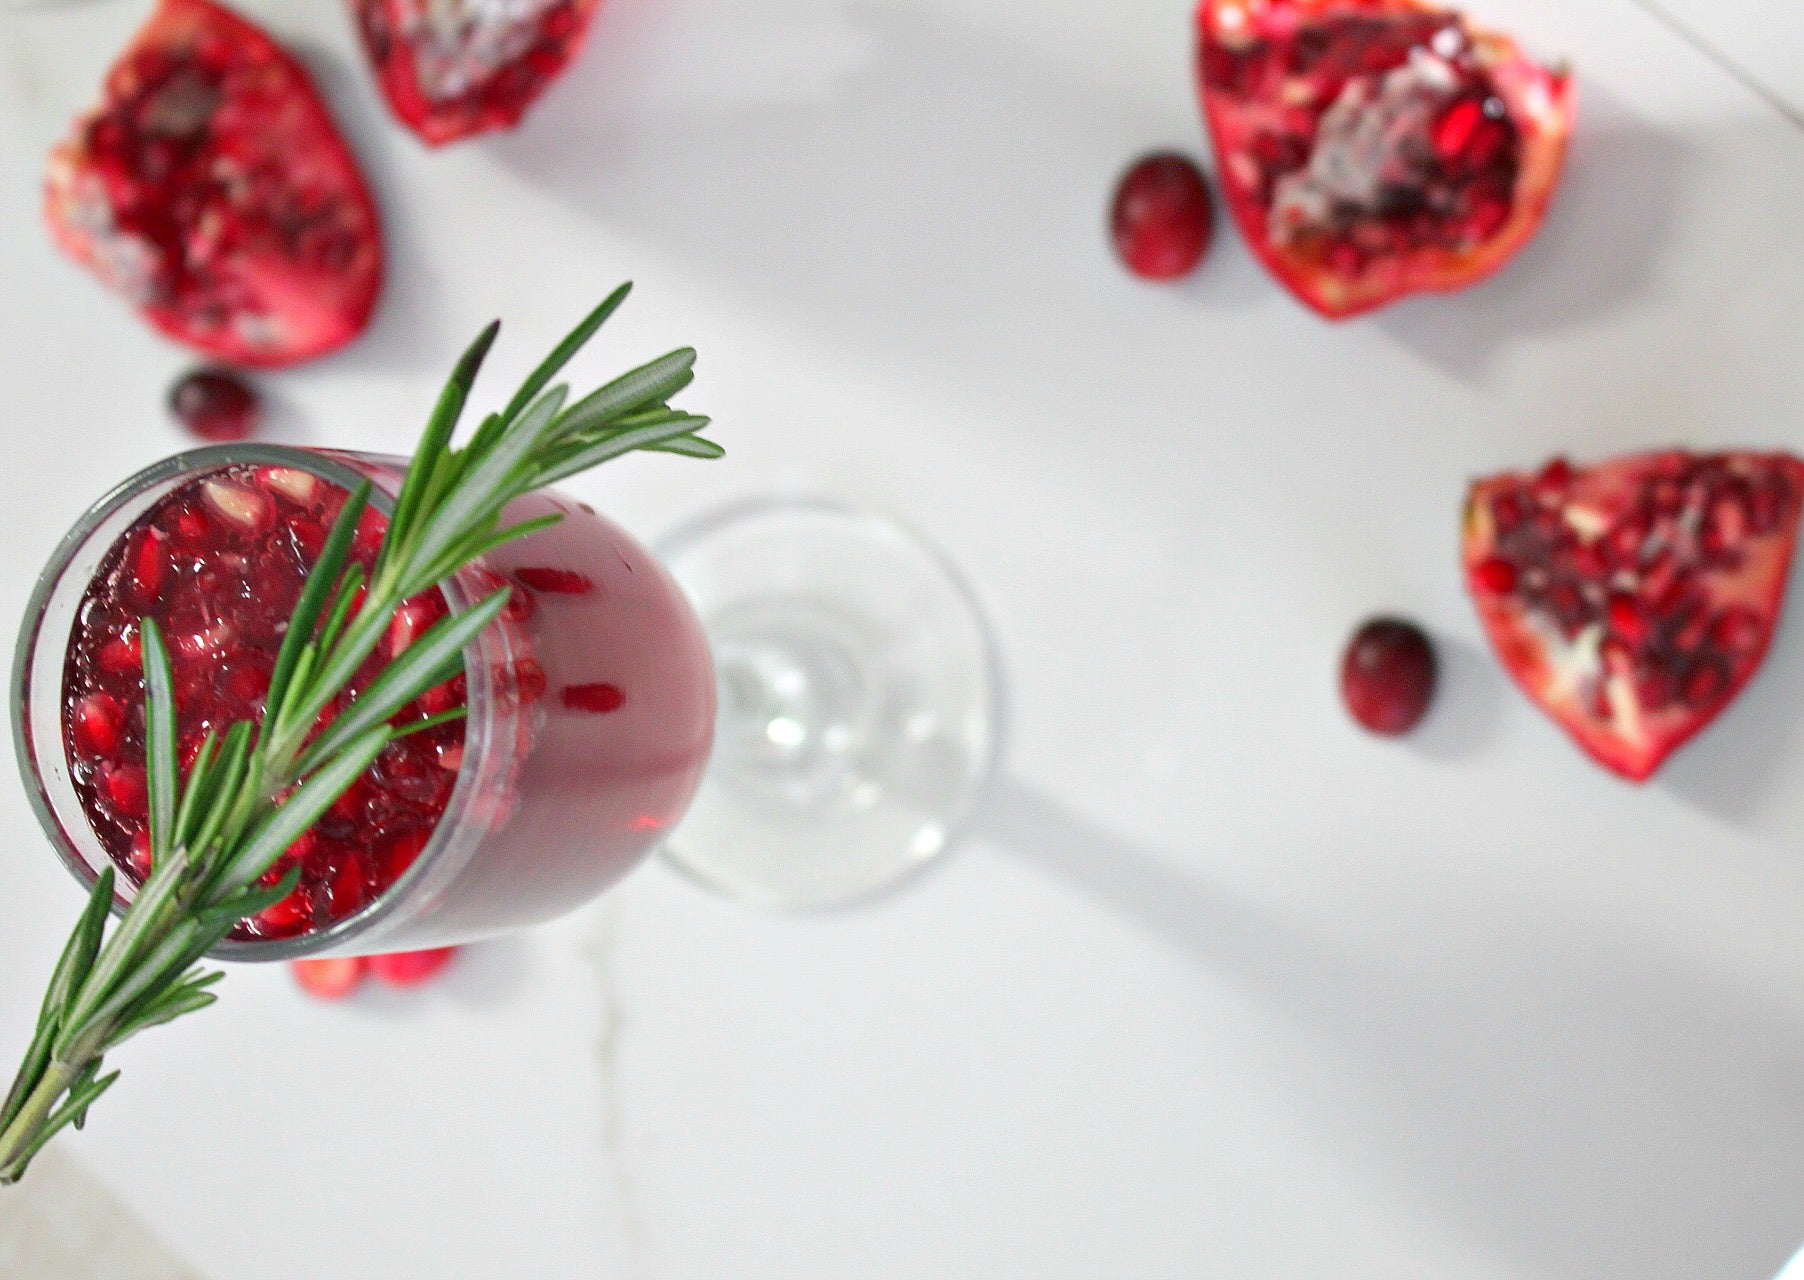 pomegranate & cranberry mimosa, with sliced pomegranate